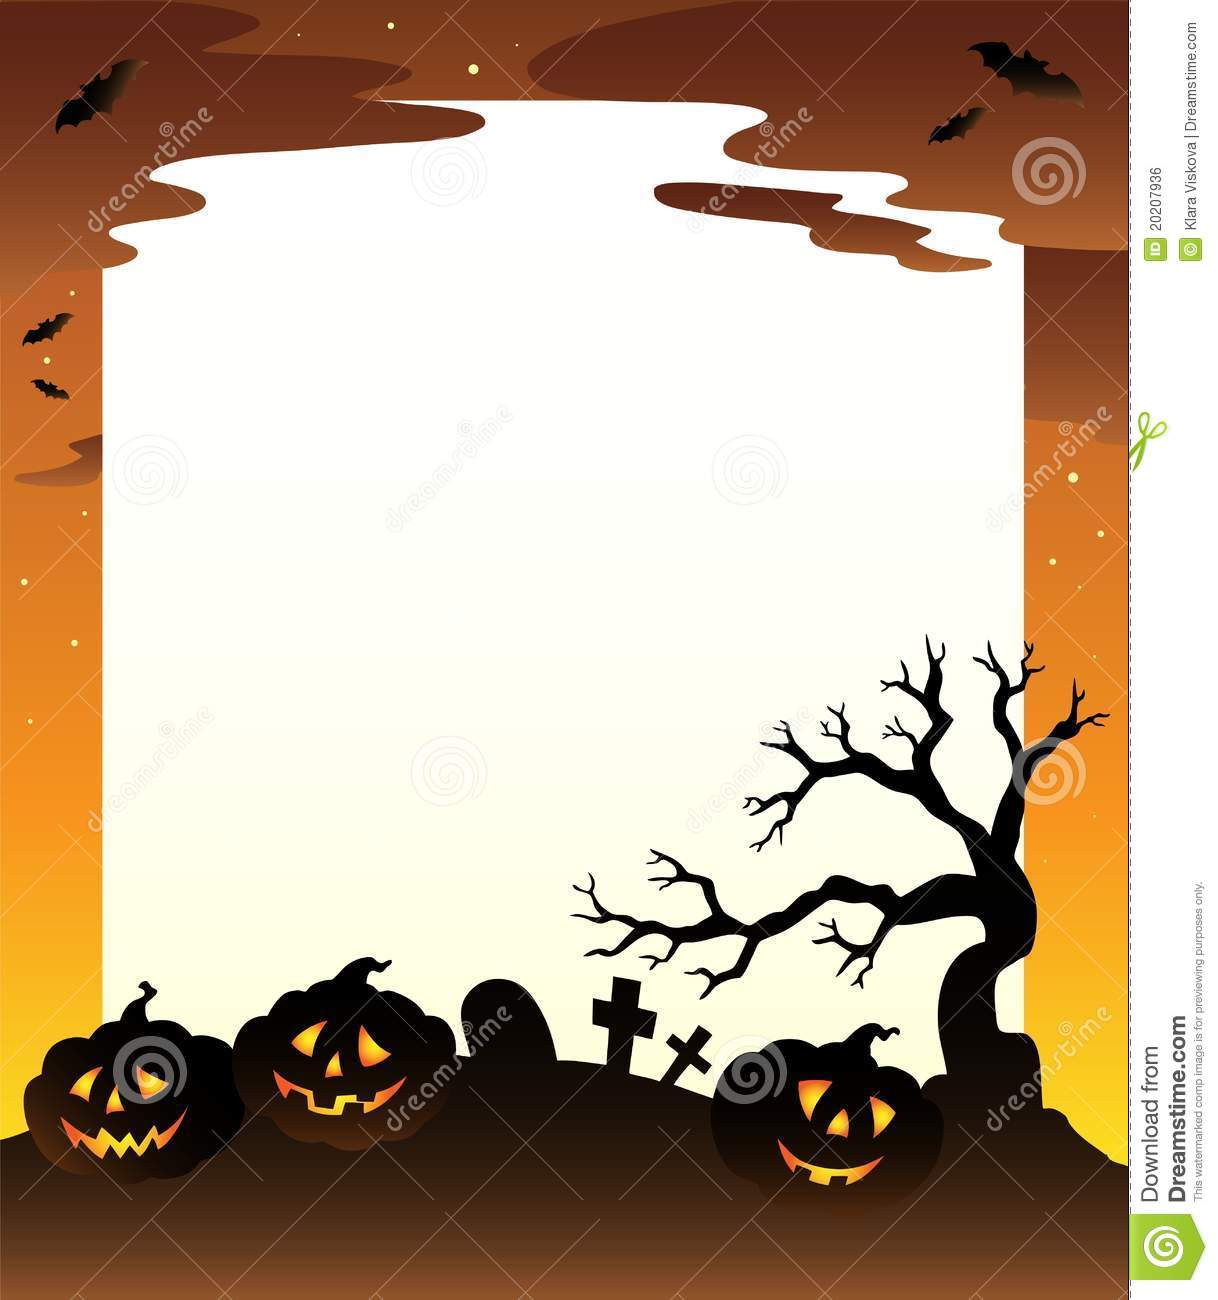 frame with halloween scenery